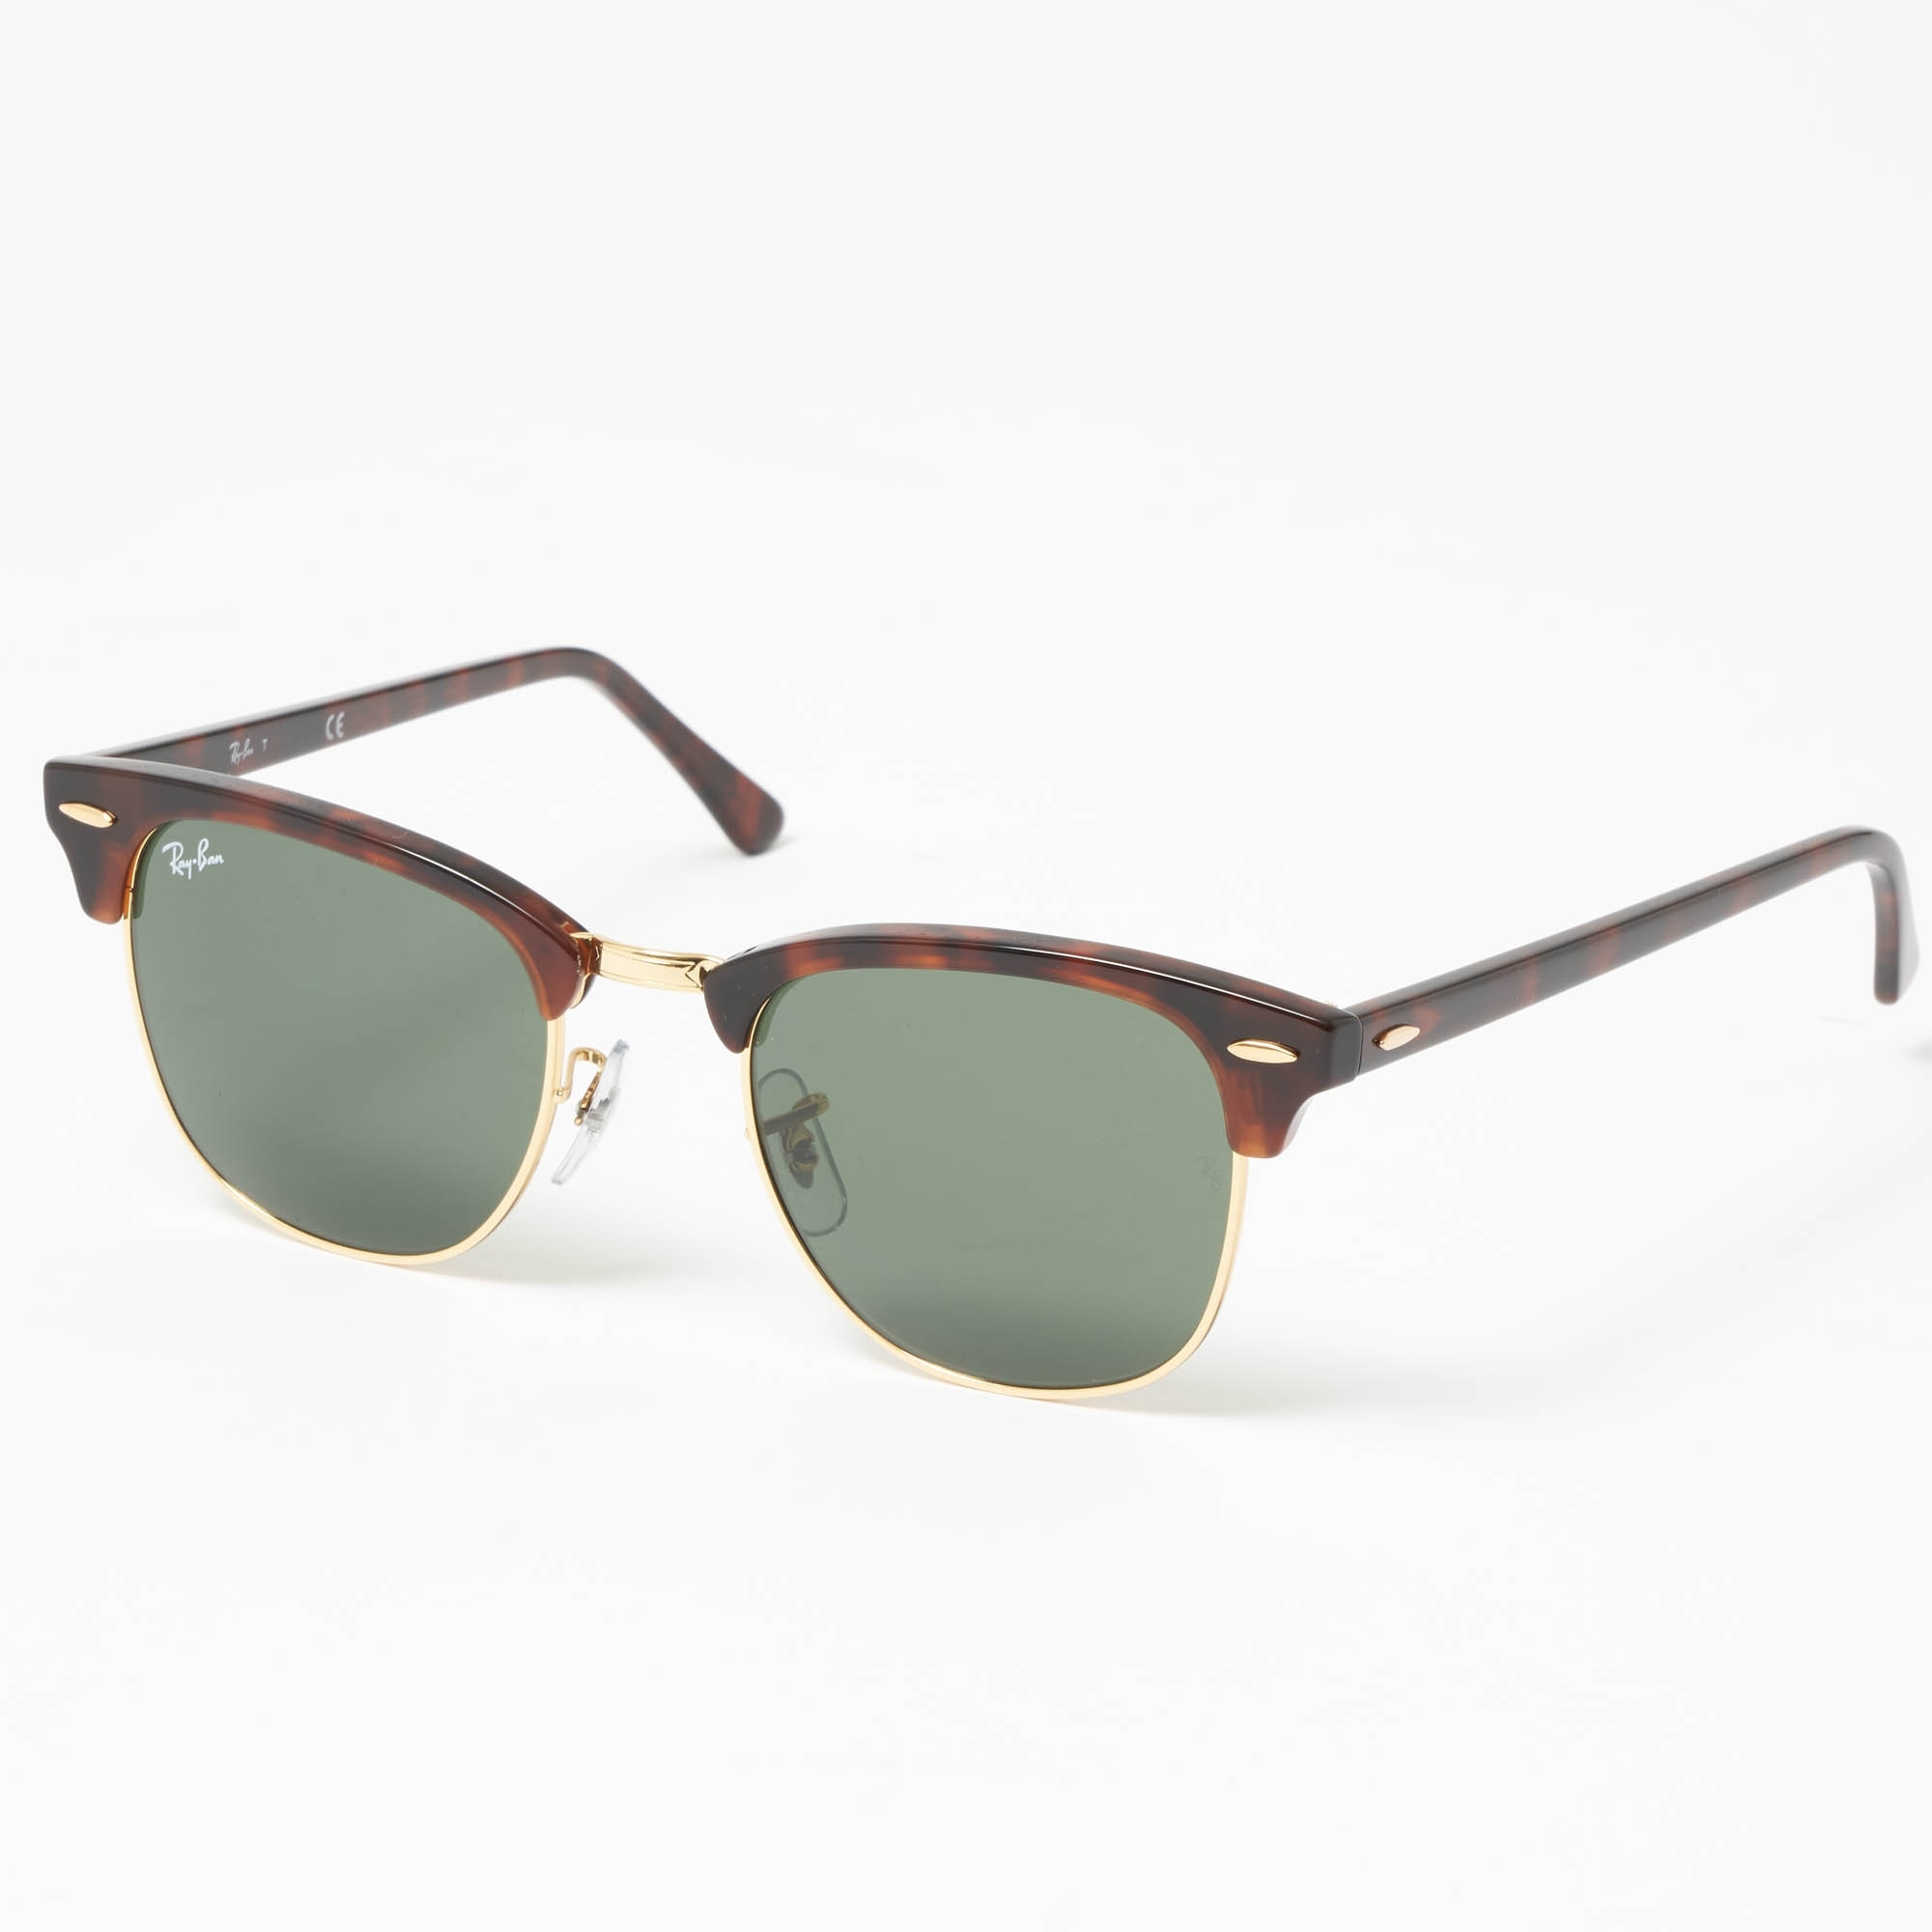 73ee9d20a Tortoise Classic Clubmaster Sunglasses - Classic G15 lenses